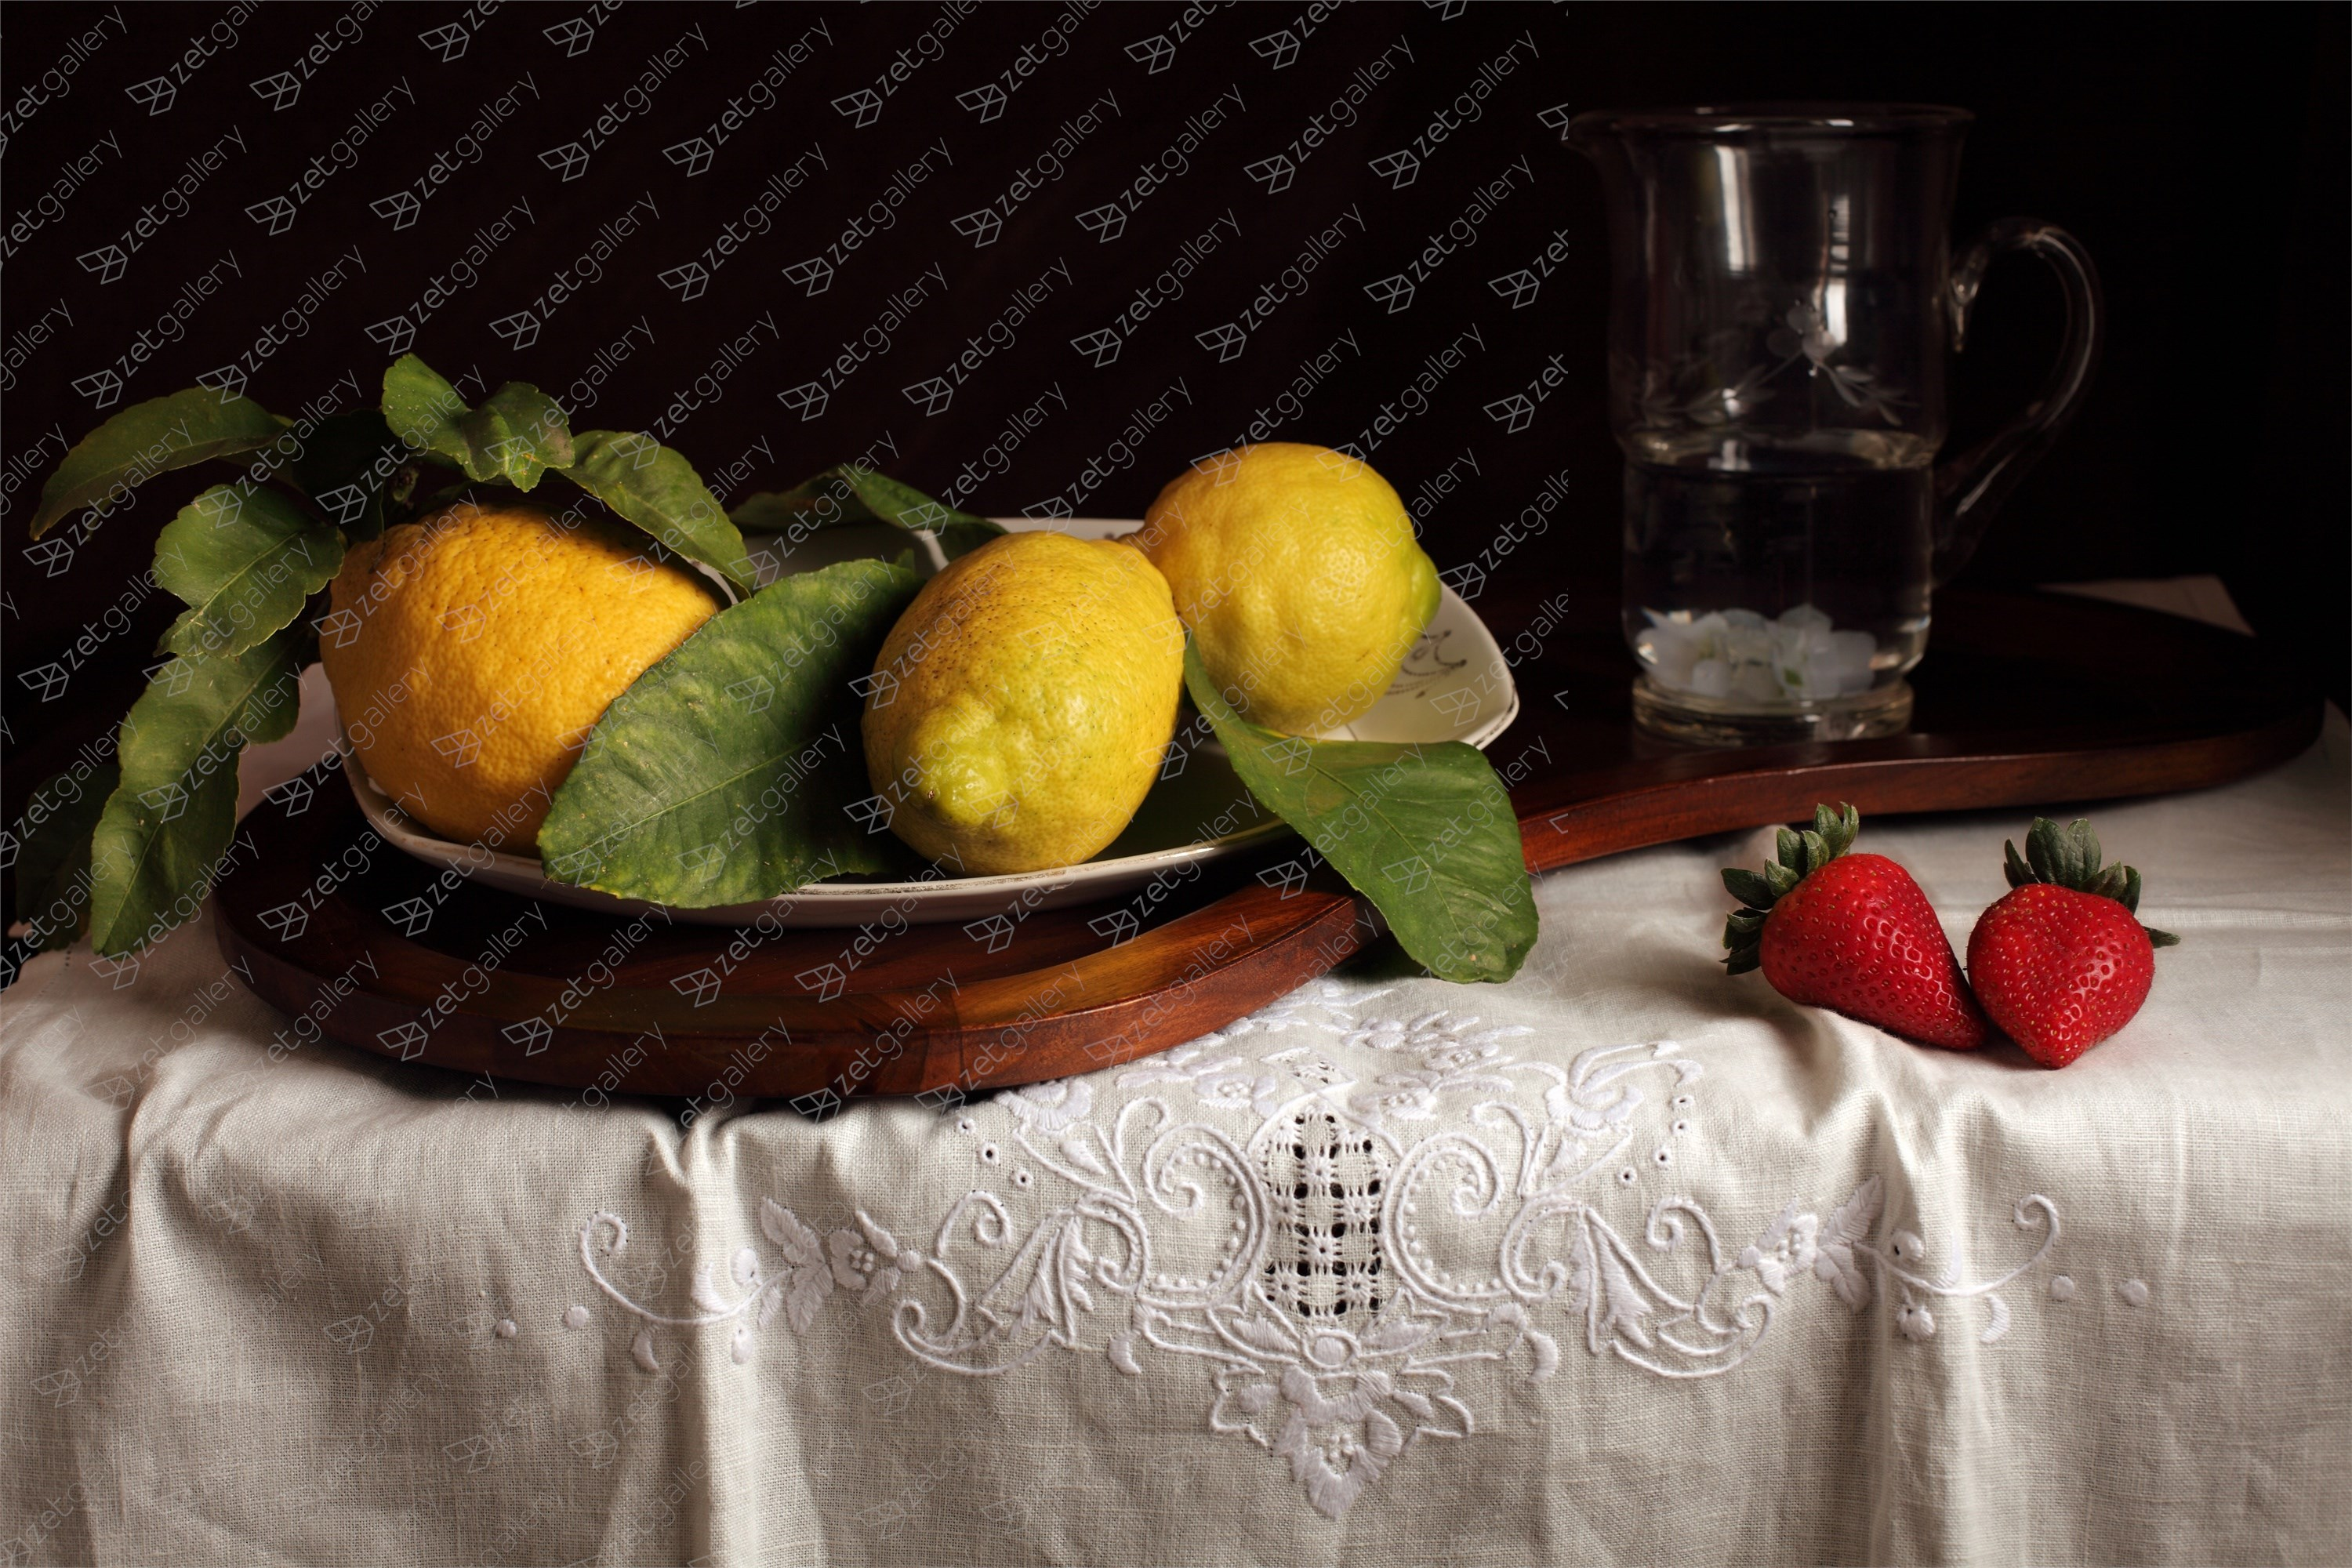 Bodegón de los limones y las fresas, original Still Life Digital Photography by Cecilia Gilabert